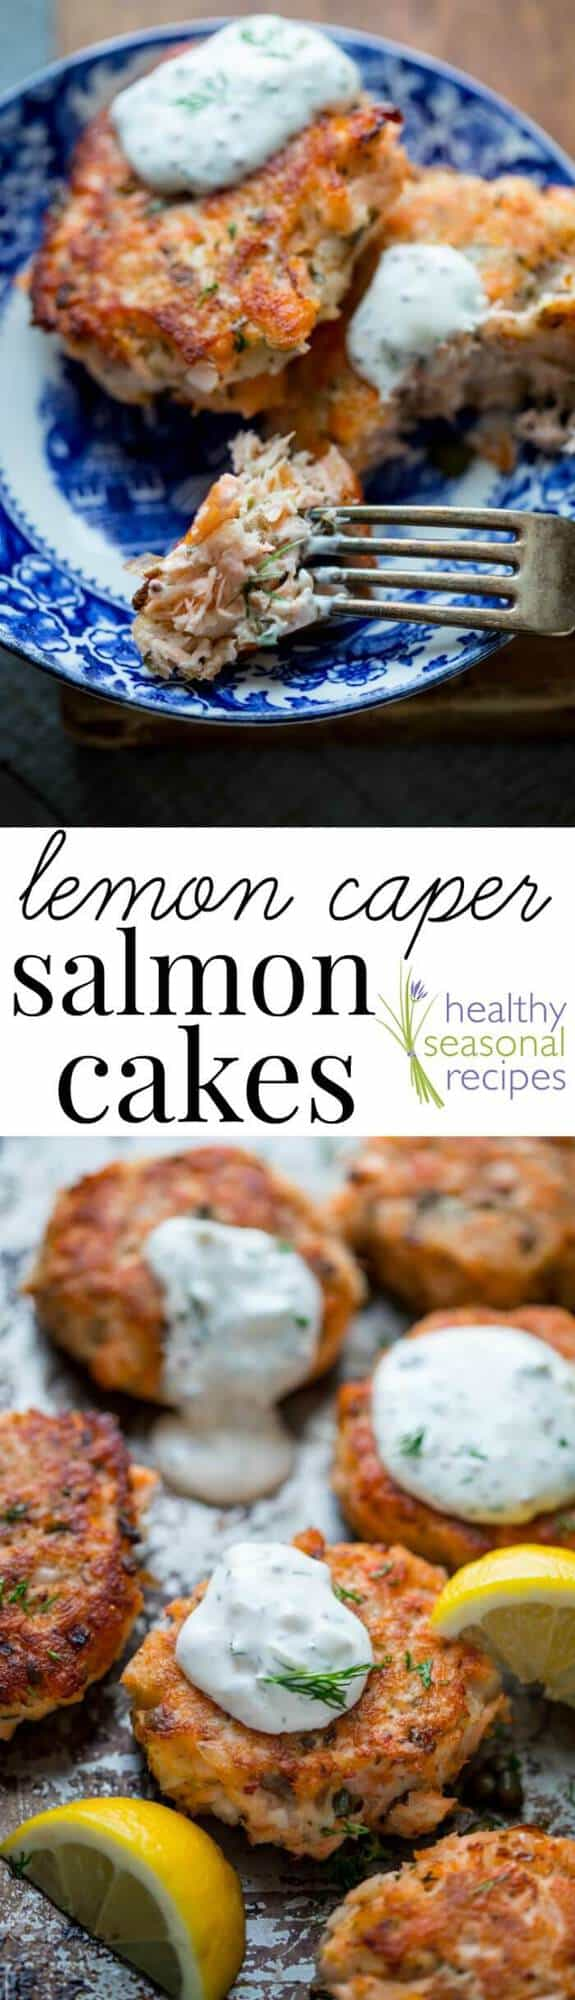 Turn left-over cooked salmon into elegant crispy salmon cakes with lemon zest, capers and light tartar sauce made with Greek yogurt. They\'re ready in less than a half hour! #salmoncakes #salmon #healthy #dinner